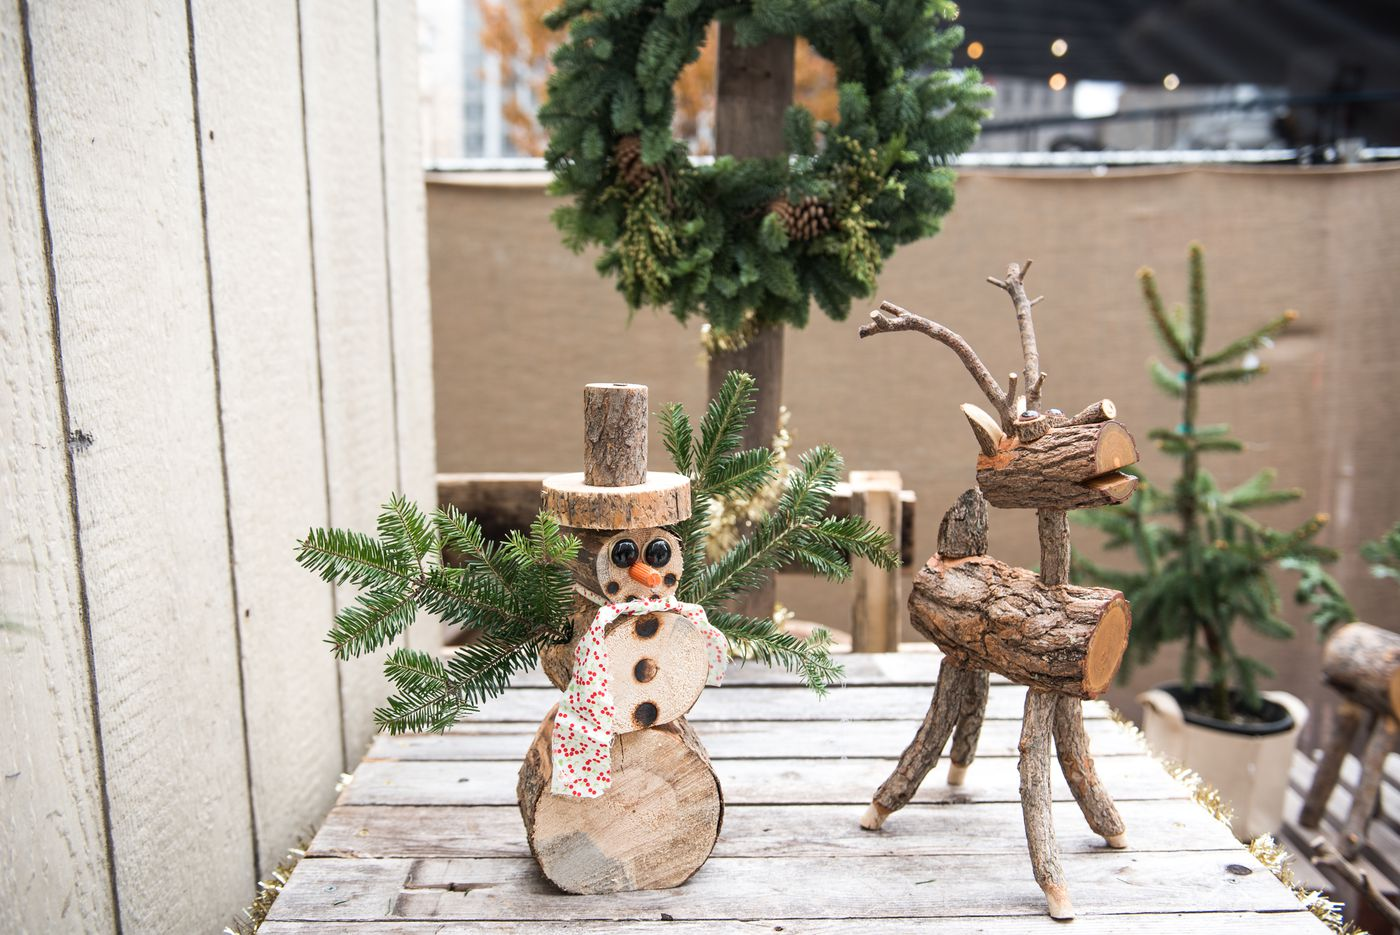 Village Christmas Tree Stand.10 Vendors Not To Miss At Christmas Village In Love Park